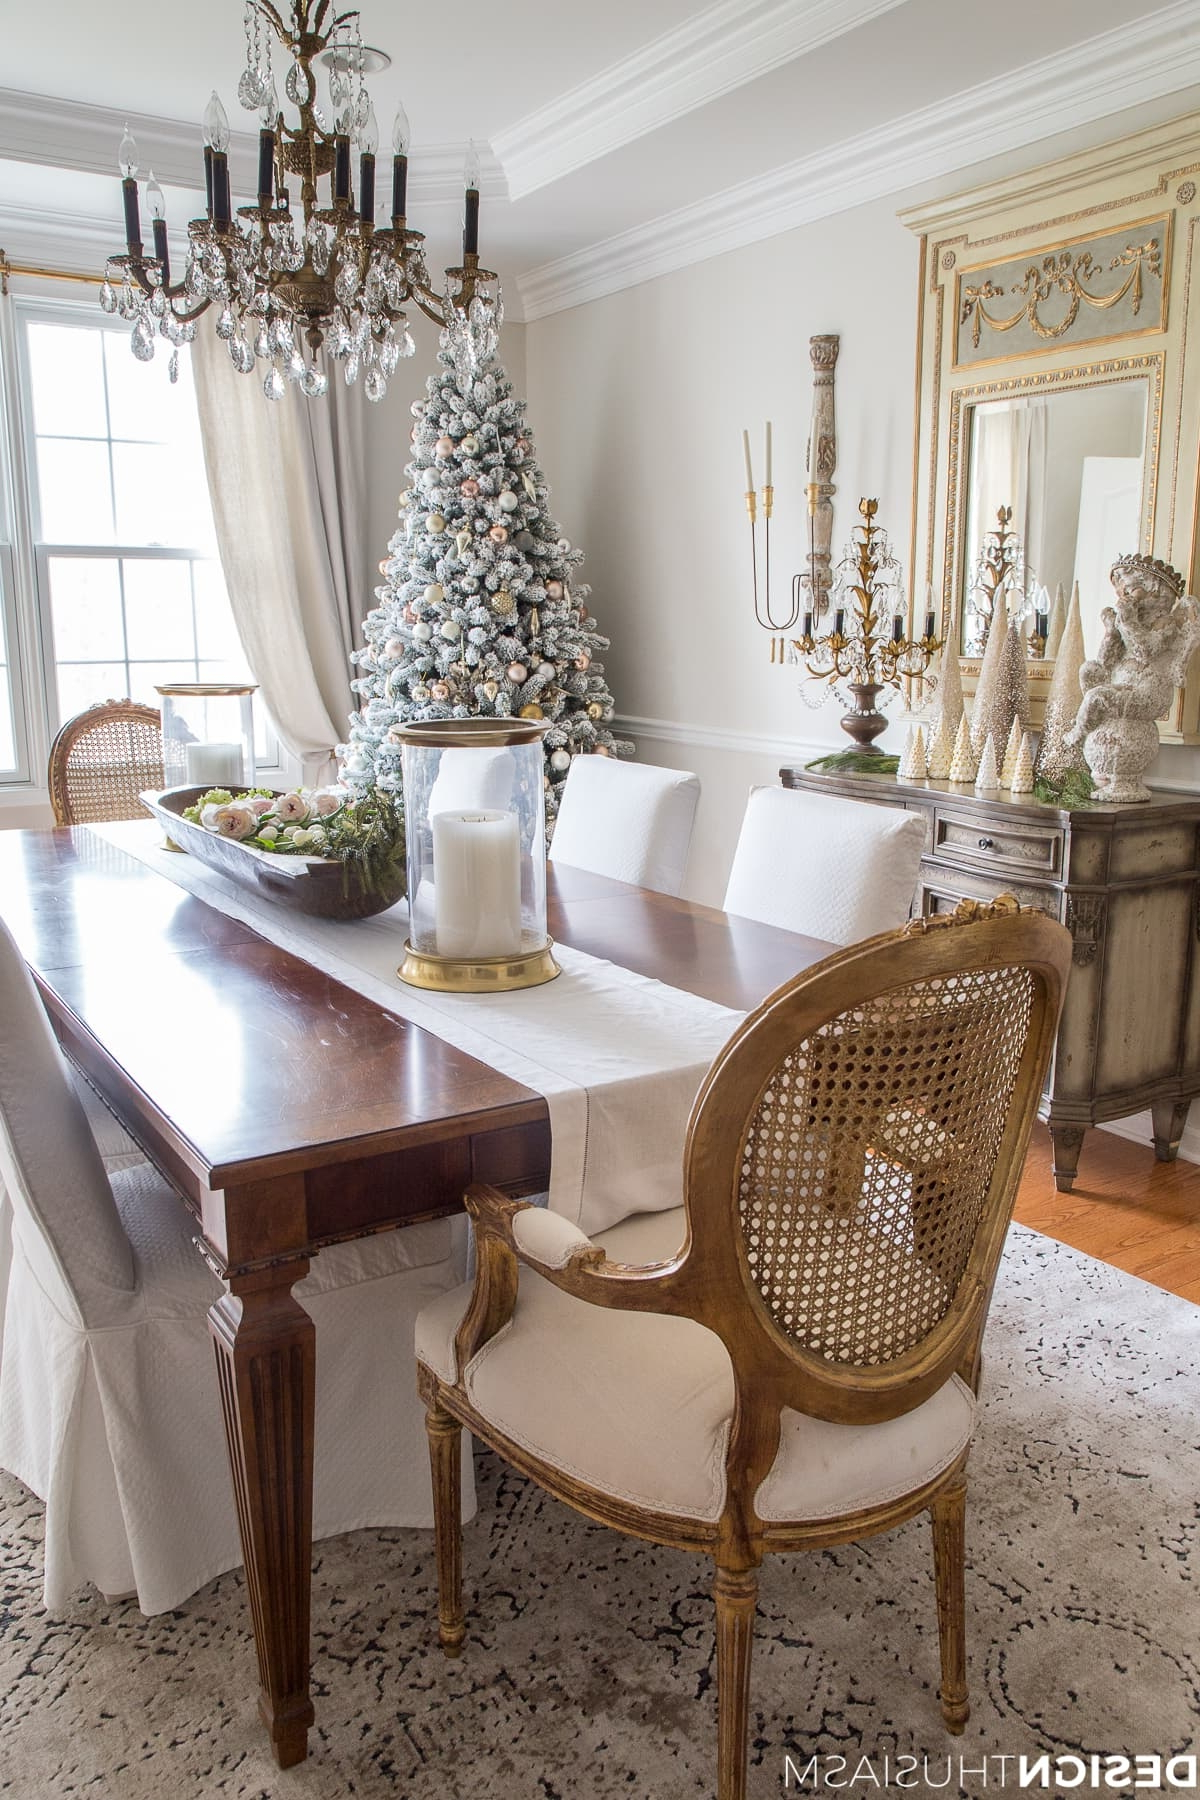 Medium Elegant Dining Tables Within Trendy Elegant Holiday Decorating Ideas Dining Room – Saltandblues (View 4 of 30)